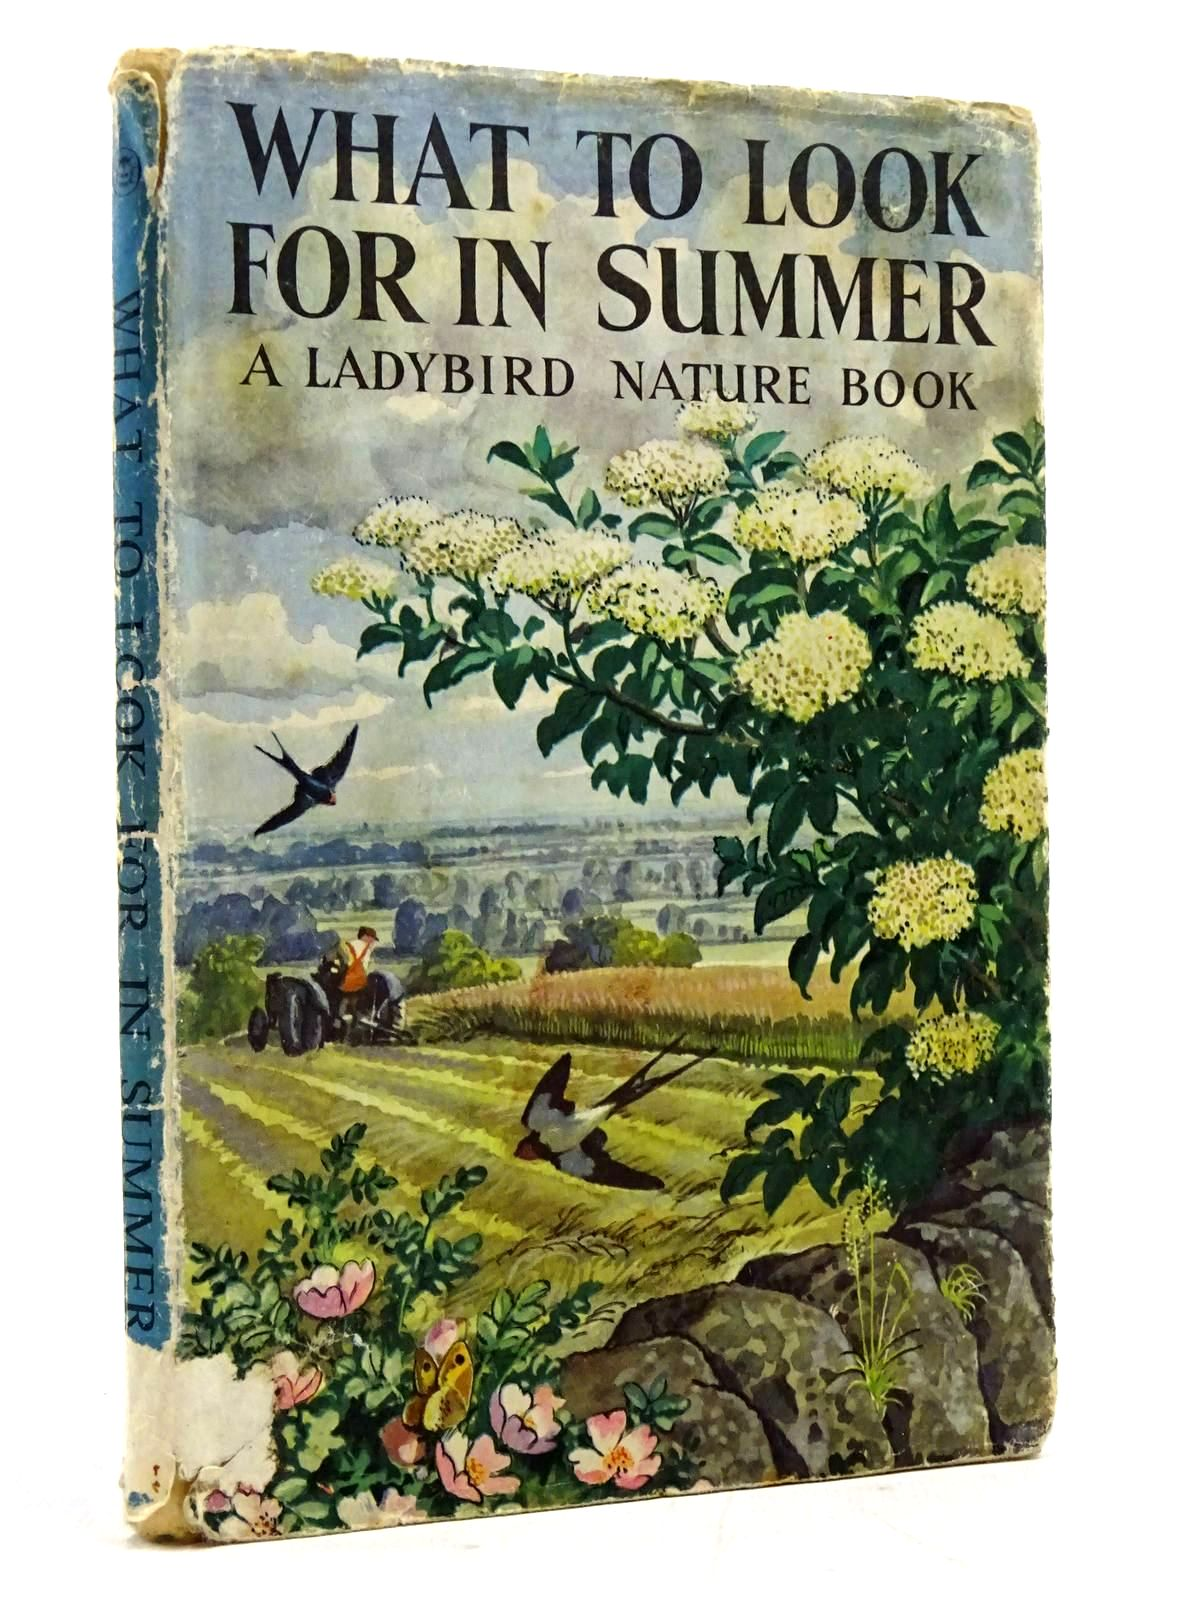 Photo of WHAT TO LOOK FOR IN SUMMER written by Watson, E.L. Grant illustrated by Tunnicliffe, C.F. published by Wills & Hepworth Ltd. (STOCK CODE: 2131533)  for sale by Stella & Rose's Books